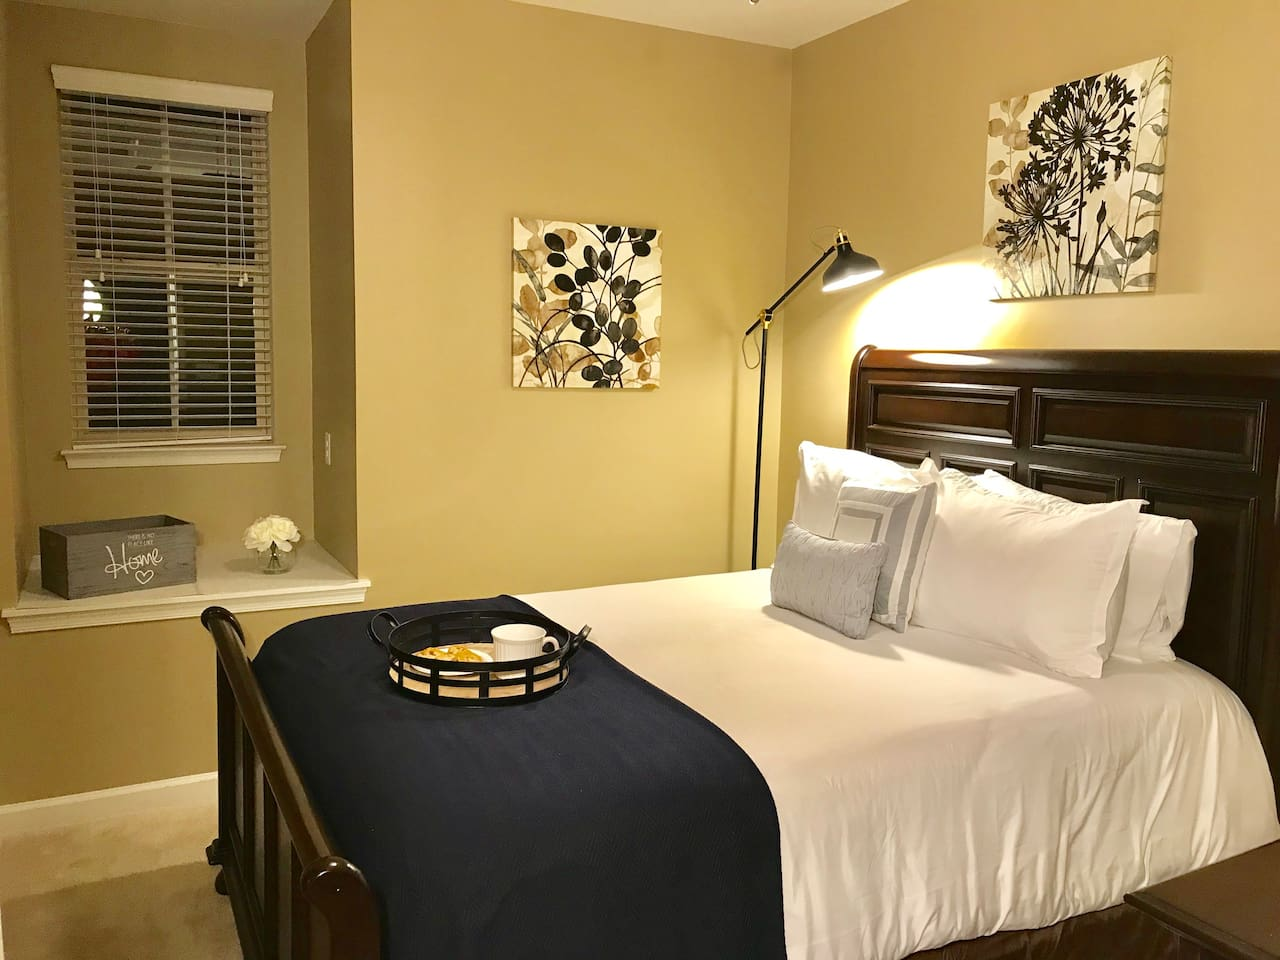 Luxurious bedding and en-suite, PRIVATE bath